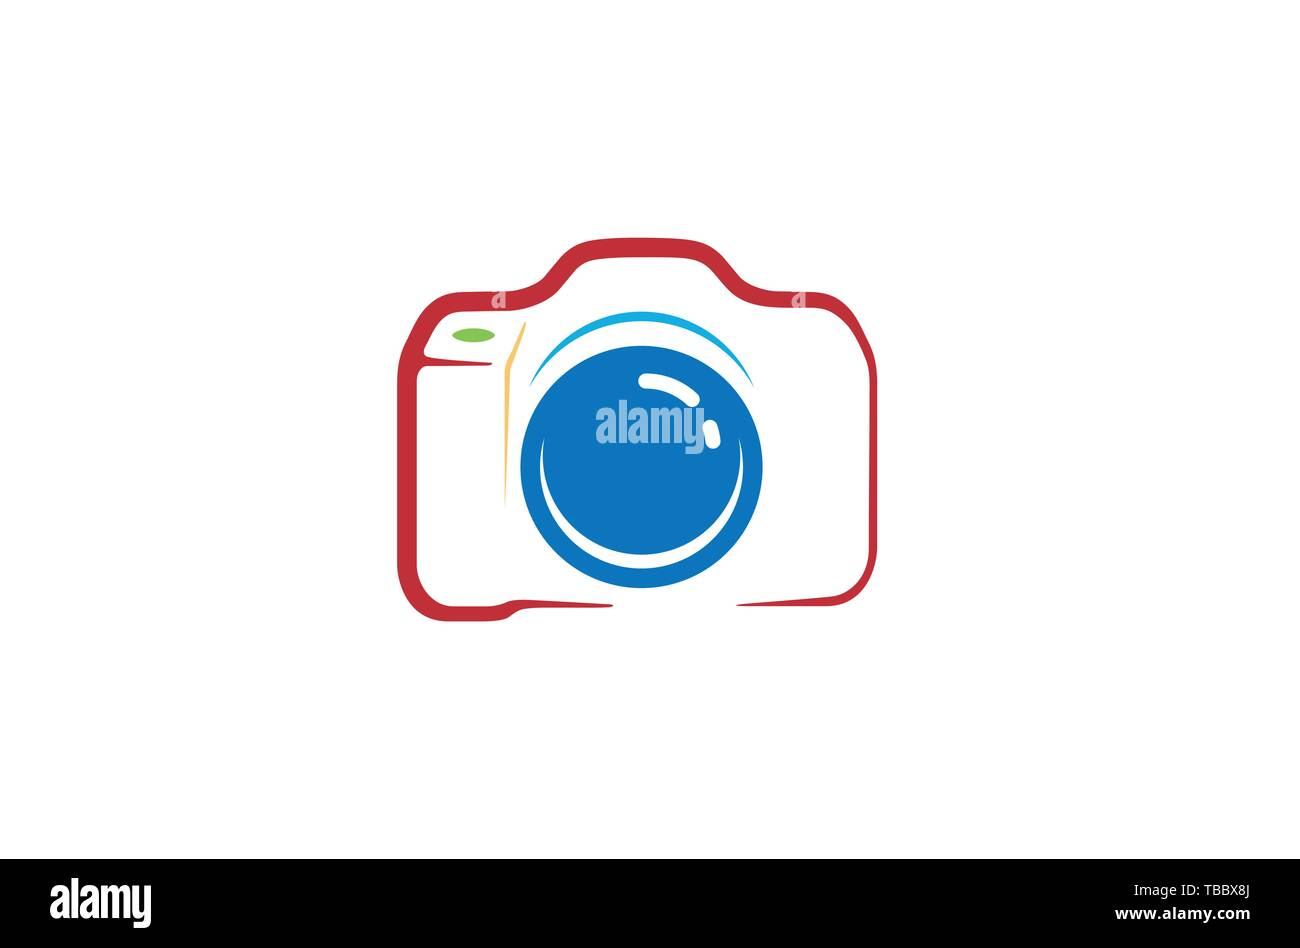 Creative Abstract Camera Logo Design Symbol Vector Illustration Stock Vector Image Art Alamy